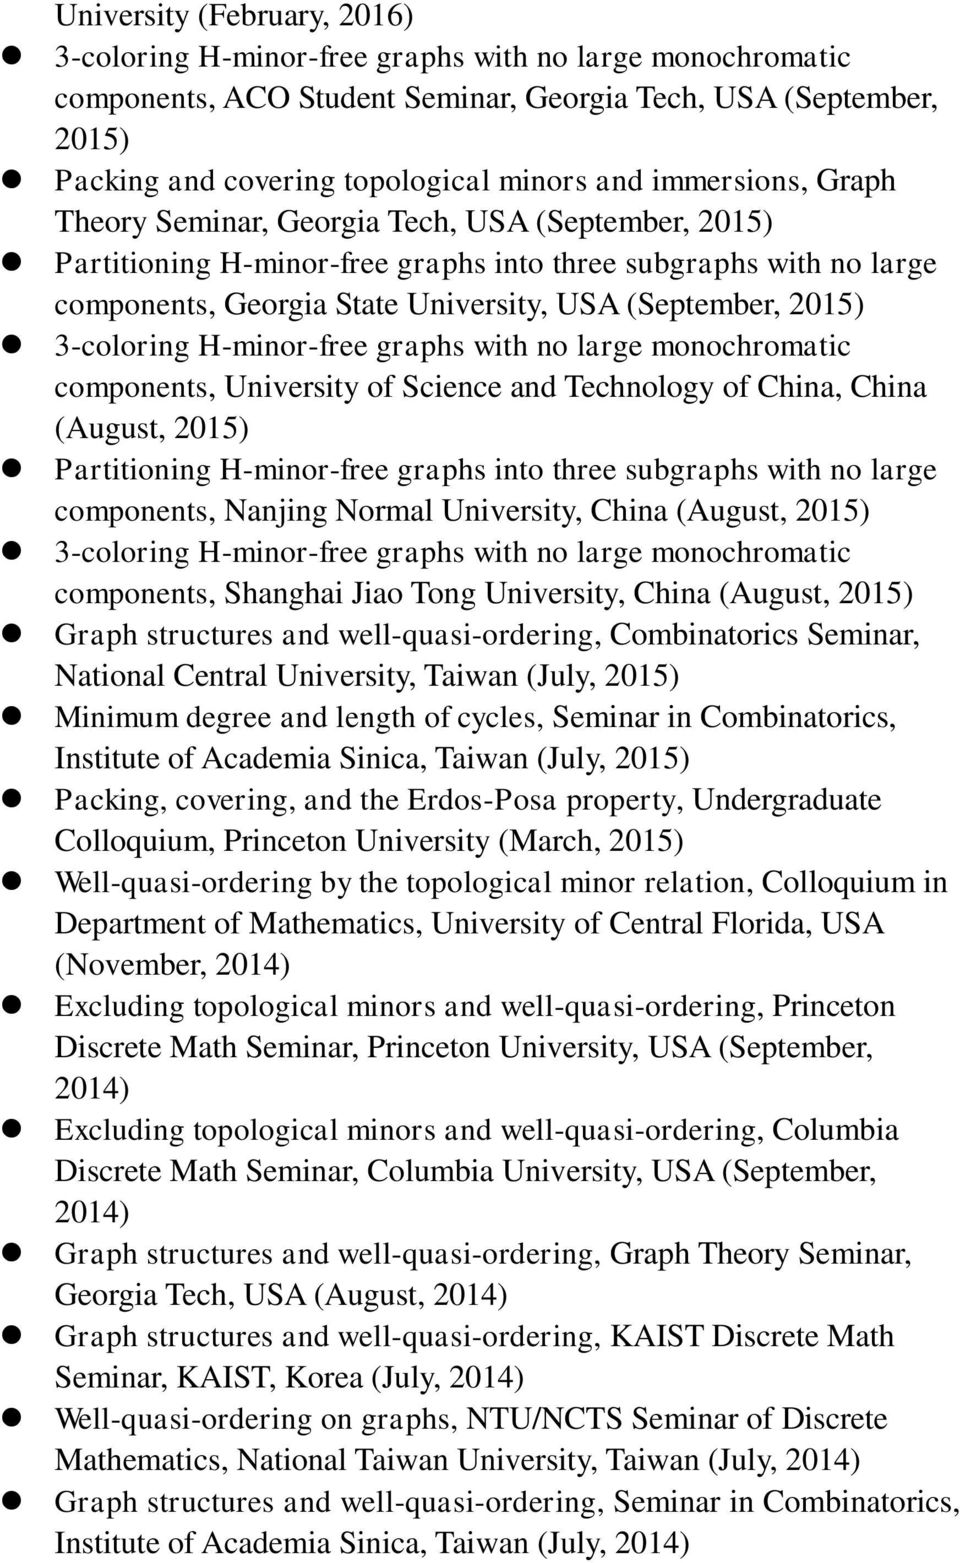 3-coloring H-minor-free graphs with no large monochromatic components, University of Science and Technology of China, China (August, 2015) Partitioning H-minor-free graphs into three subgraphs with